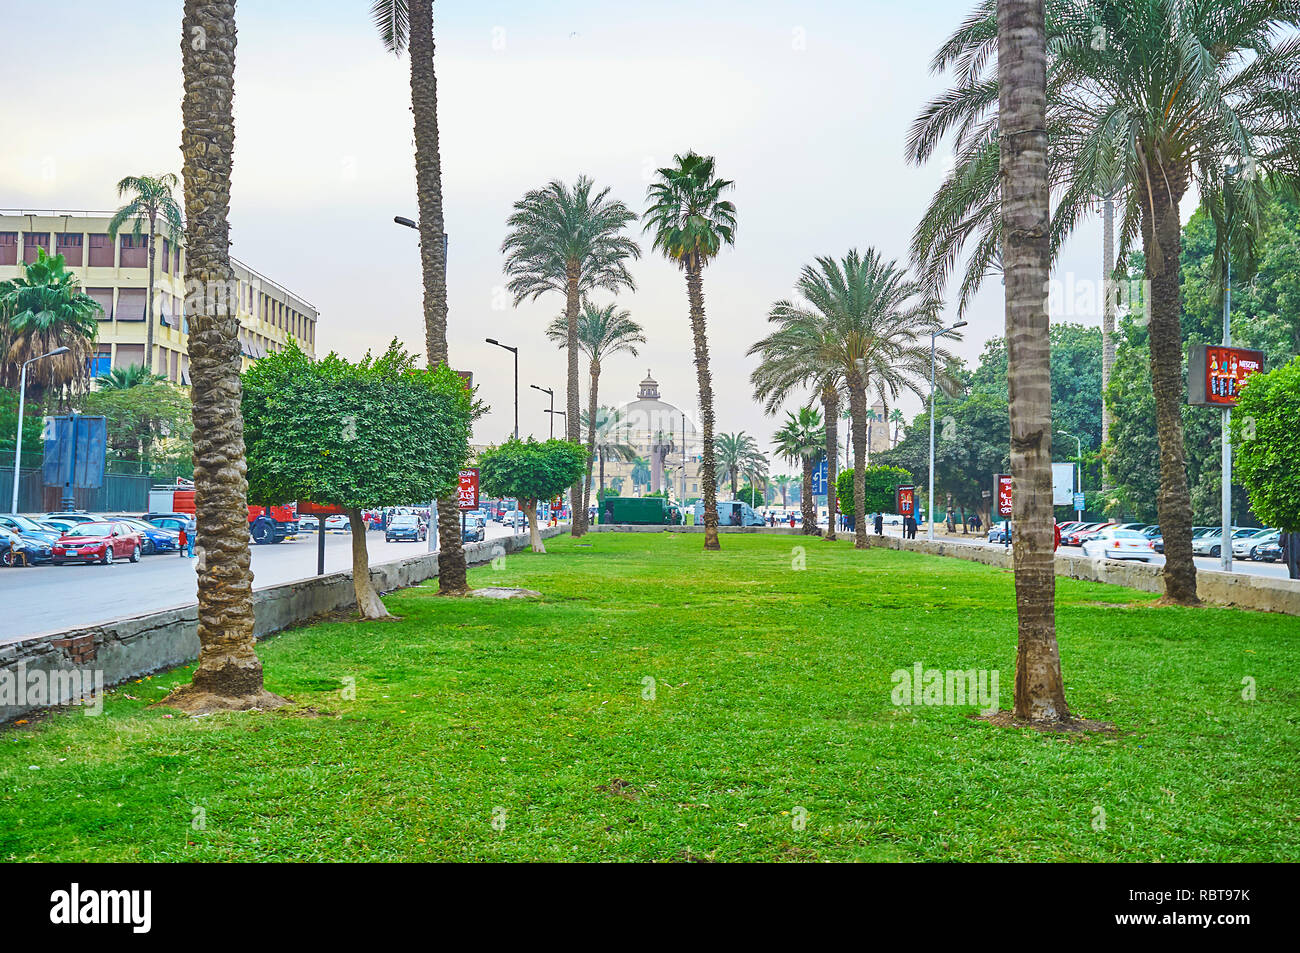 GIZA, EGYPT - DECEMBER 19, 2017: Walk along the scenic garden in Nahdet Masr square with a view on the dome of Faculty of Arts building of Cairo Unive Stock Photo